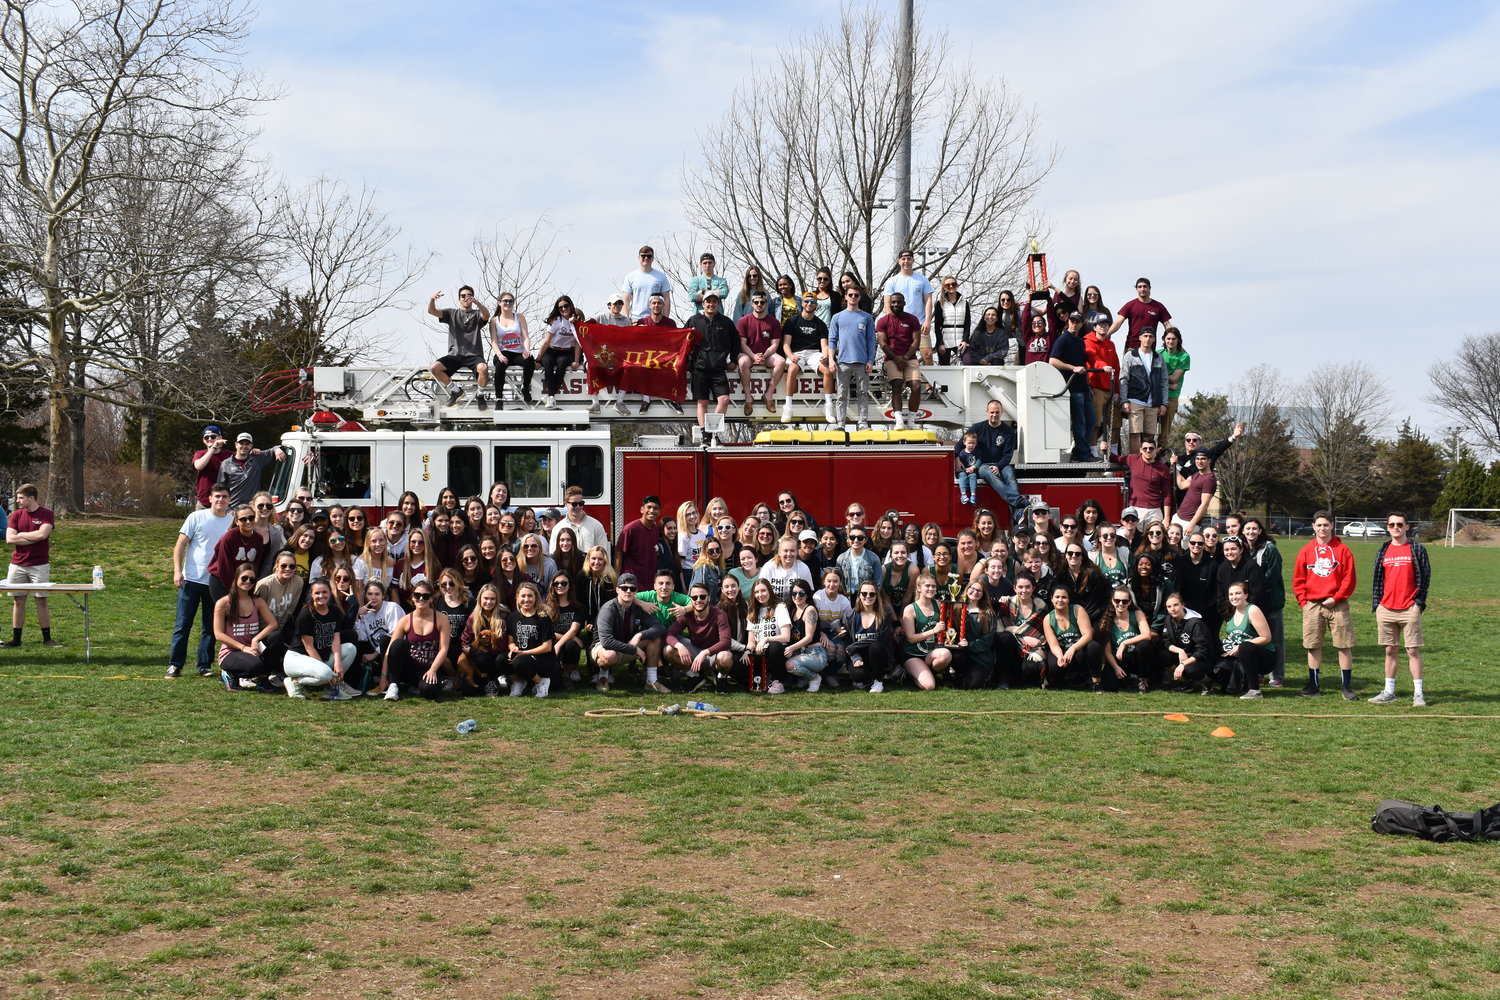 Members of Pi Kappa Alpha, the East Williston Fire Department and participating sororities posed for a group photo.